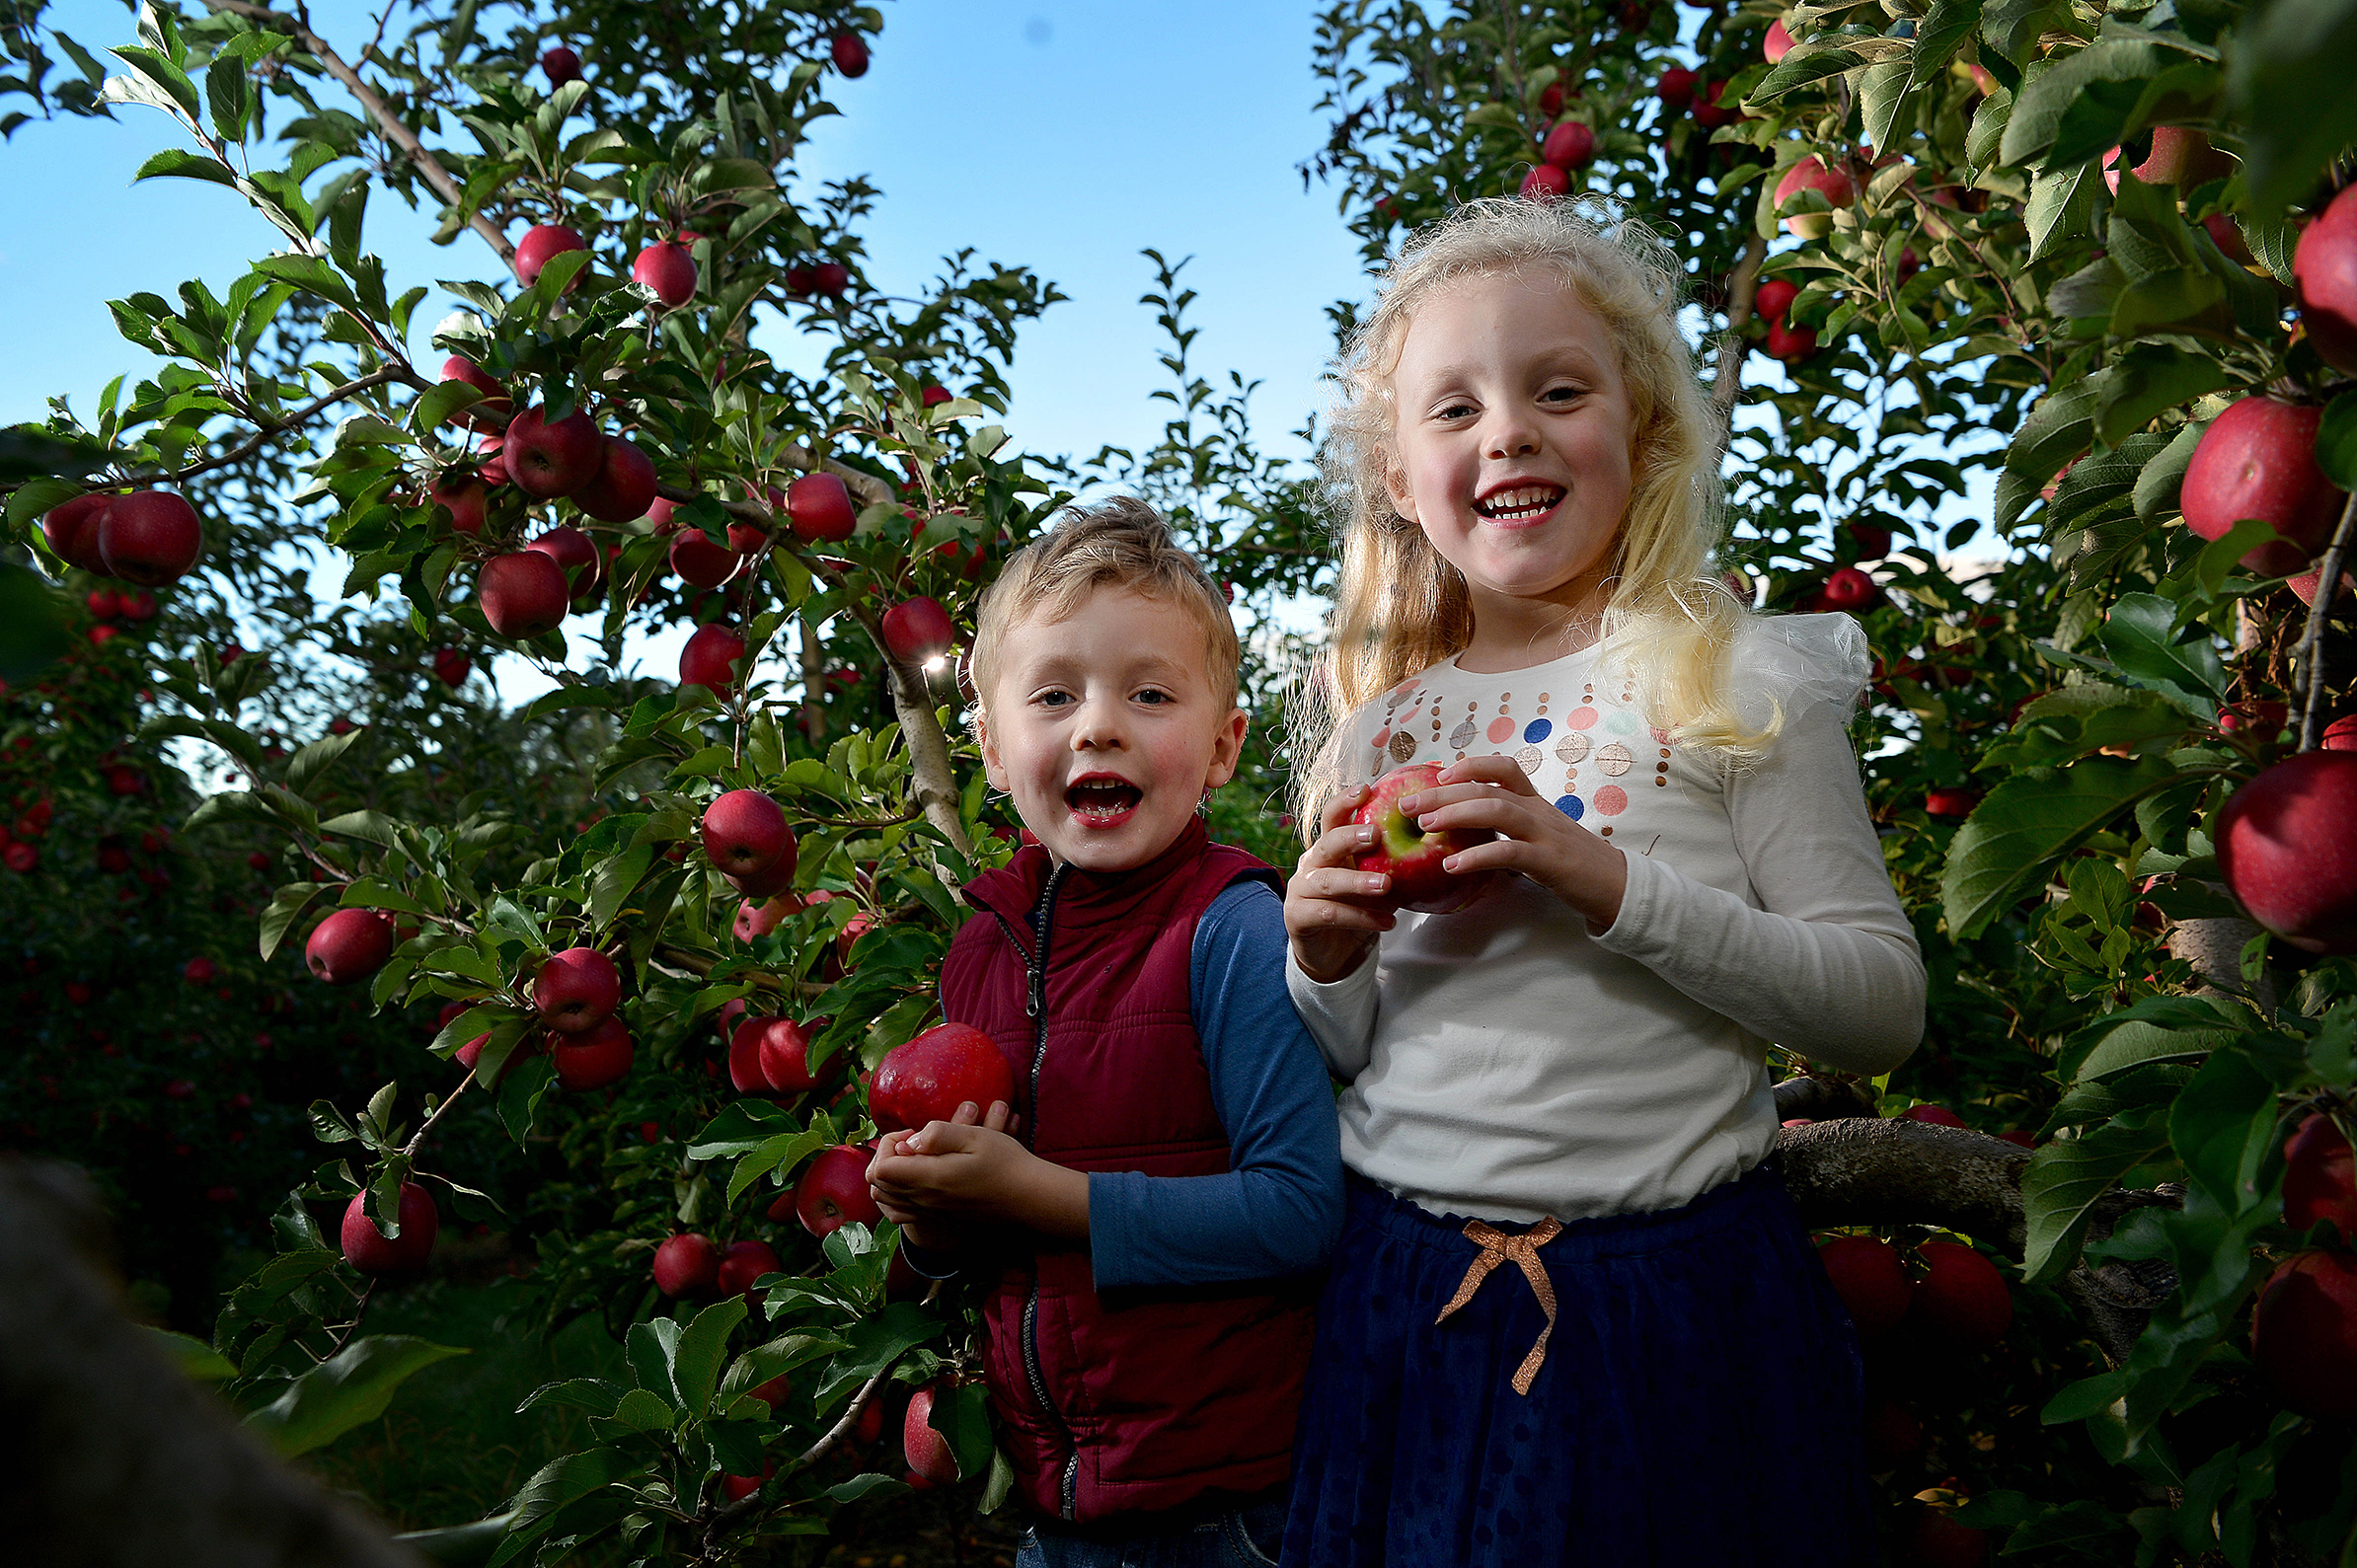 CHP_Export_156858141_Siblings Archie 3 &  Maisie Brockhoff 5 play in amongst the Pink Lady apple tre.jpg